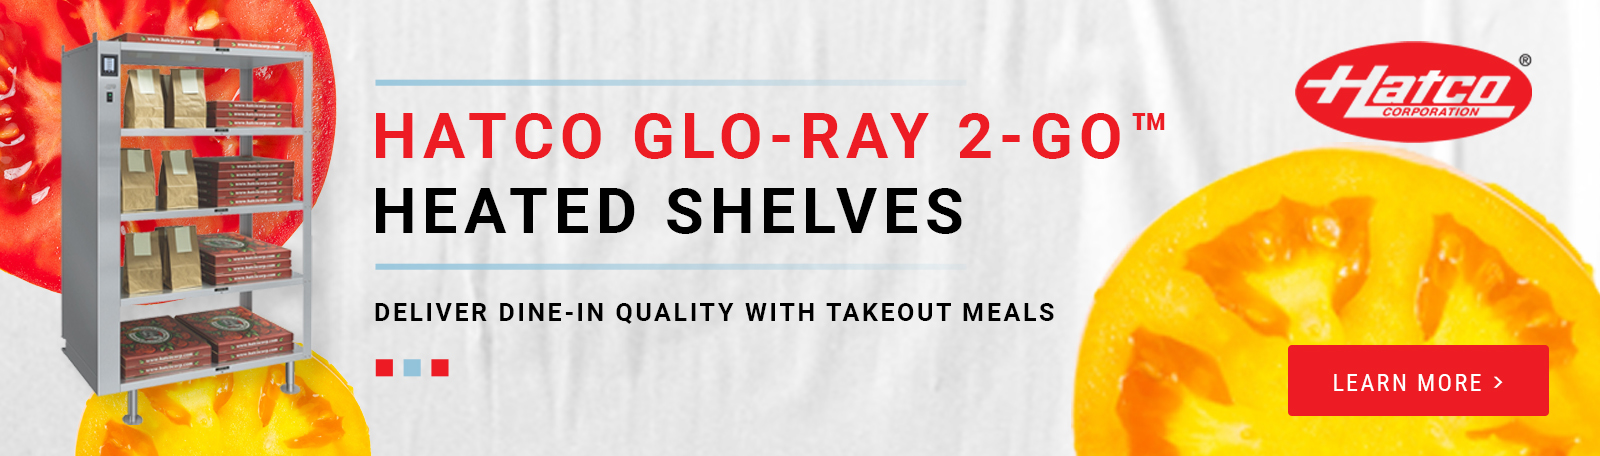 Hatco Glo-Ray 2-Go Heated Shelves - Deliver Dine-in Quality with Takeout Meals